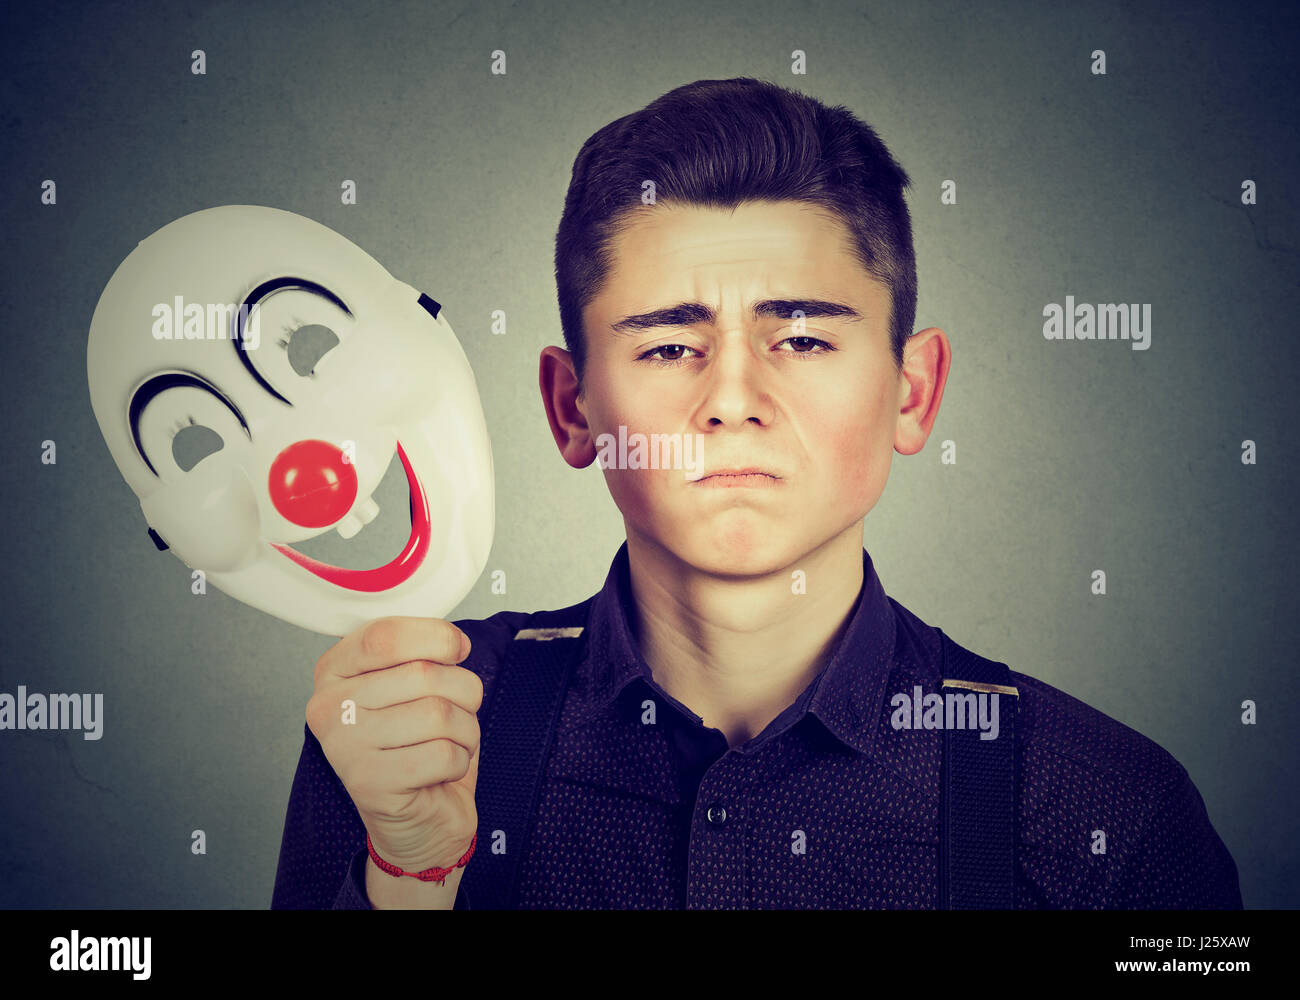 Young sad man taking off happy clown mask isolated on gray wall background. Human emotions. Split personality concept - Stock Image